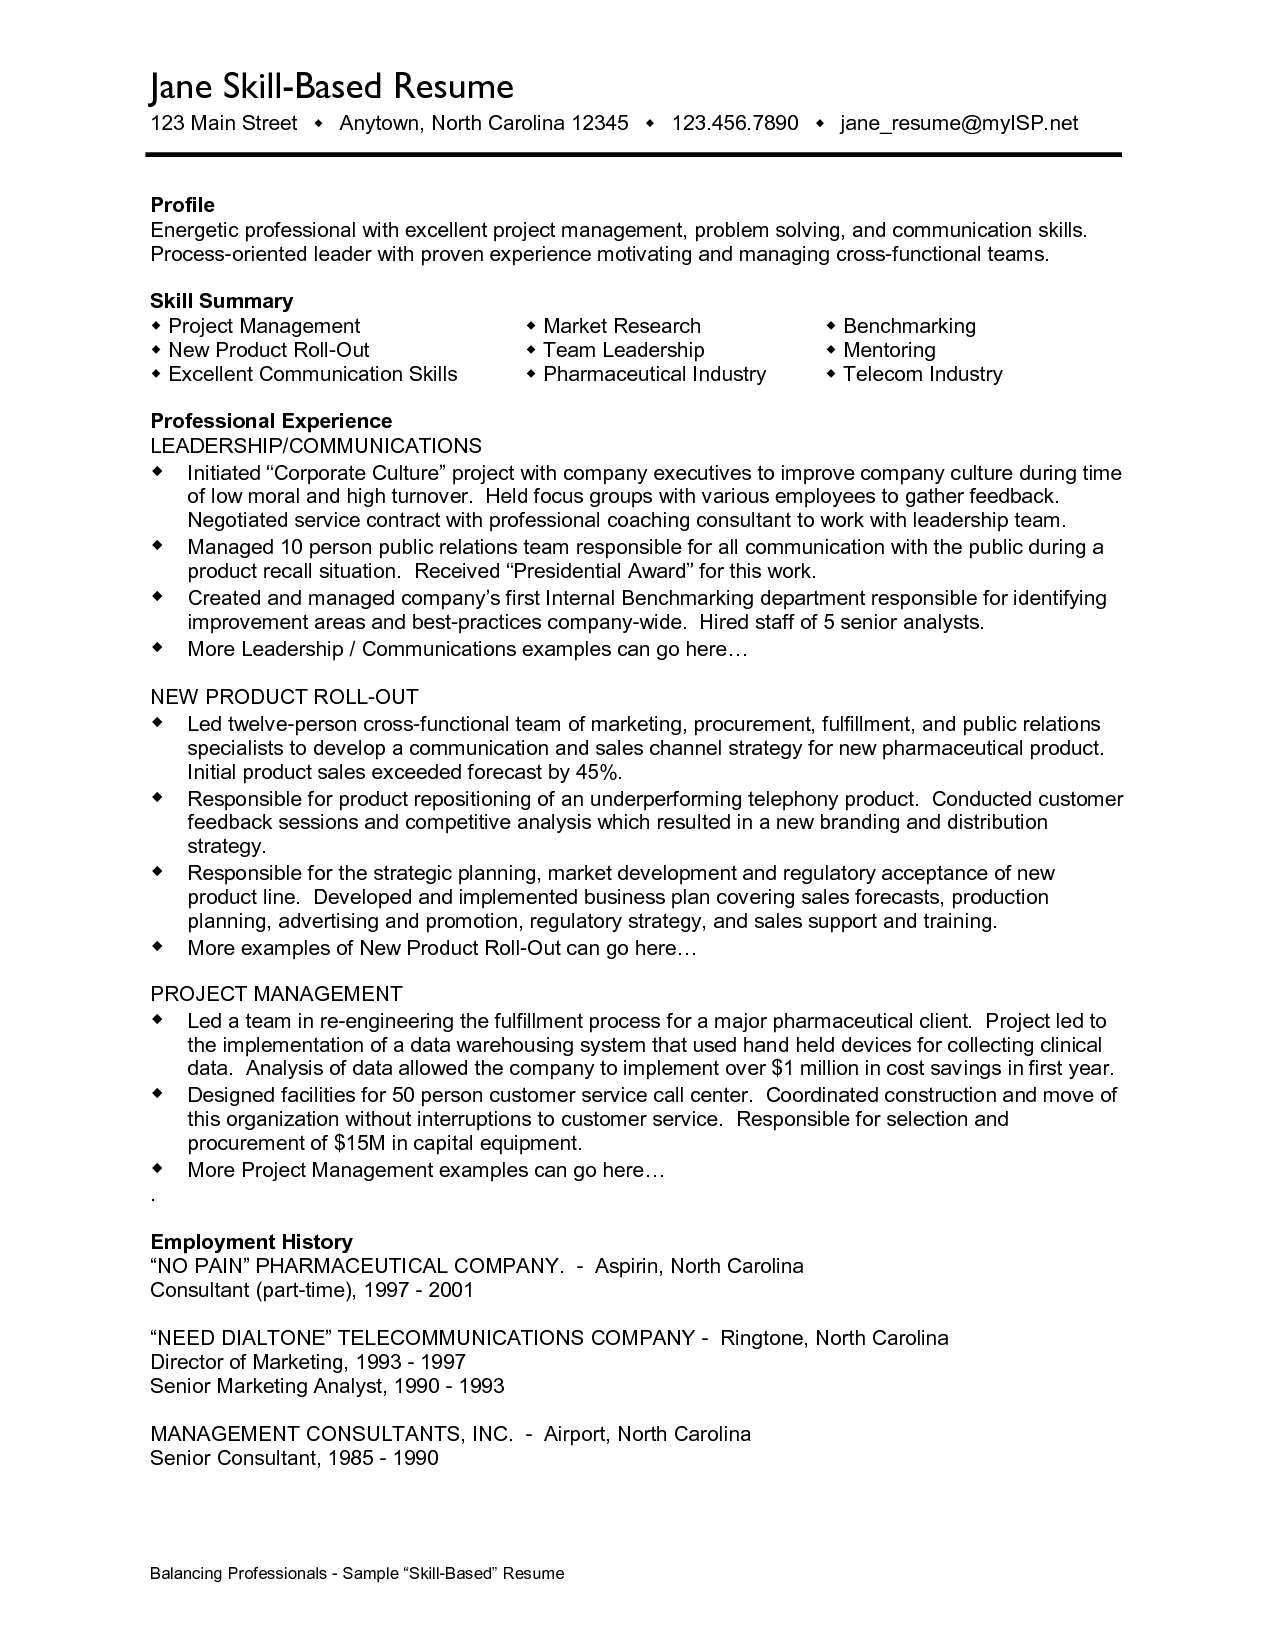 Resume Skills And Abilities Job Resume Communication Skills  Httpwwwresumecareerjob